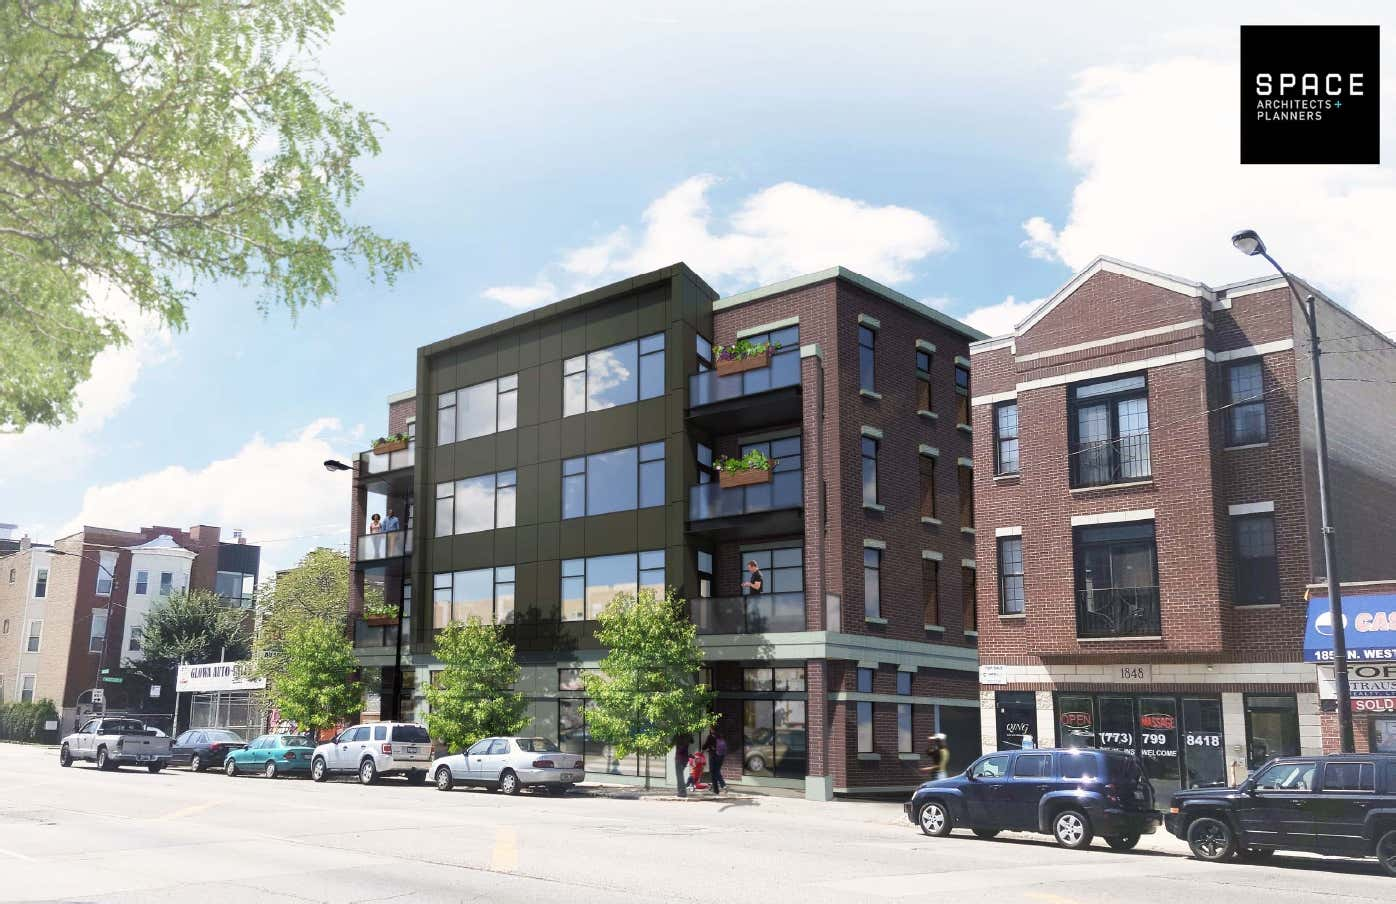 1838 N Western Avenue Development. Rendering by SPACE Architects + Planners